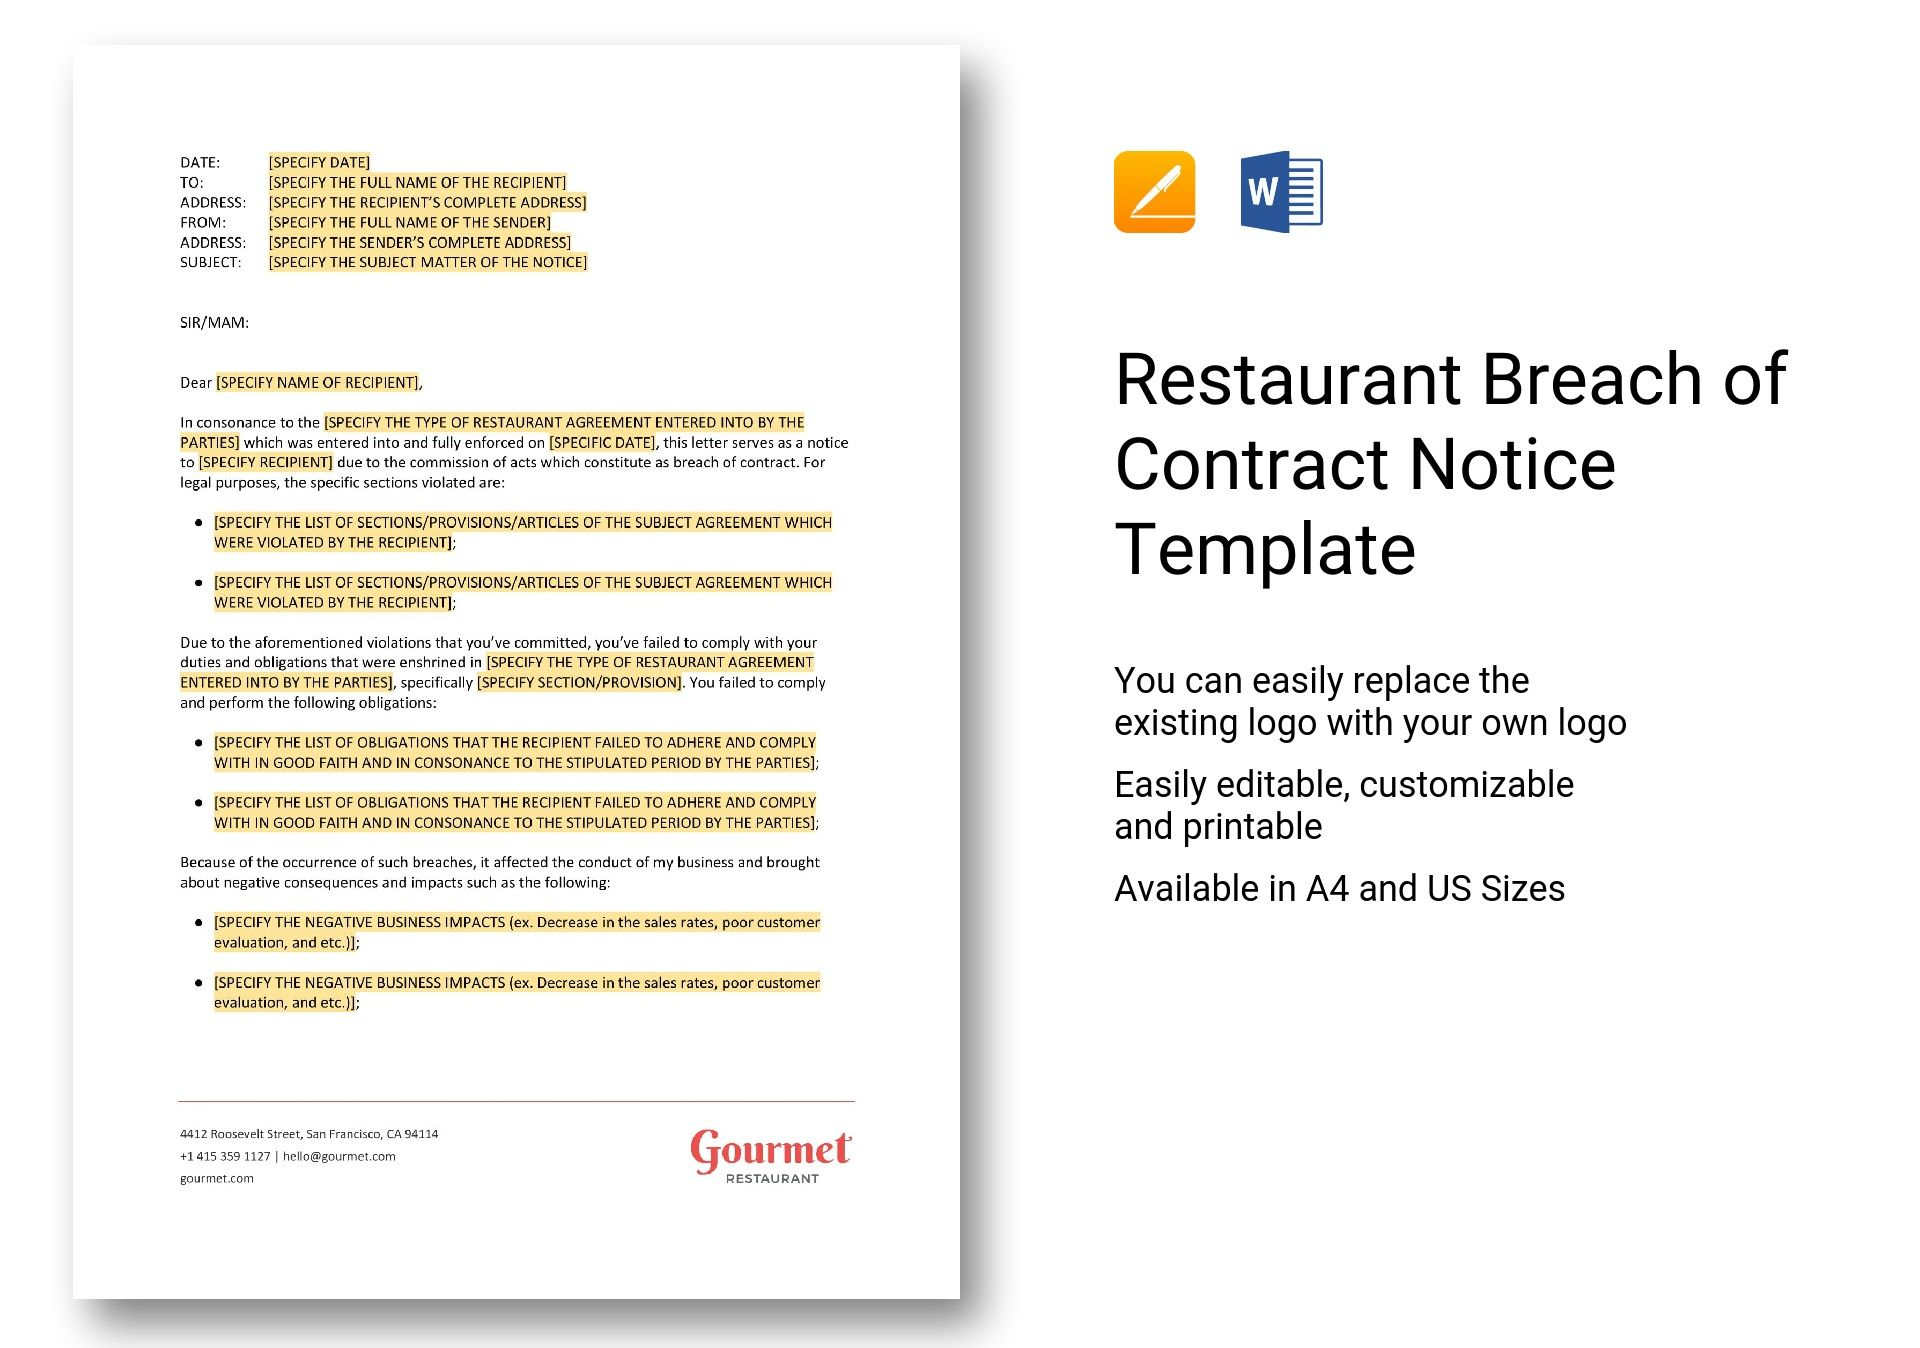 restaurant breach of contract notice template in word